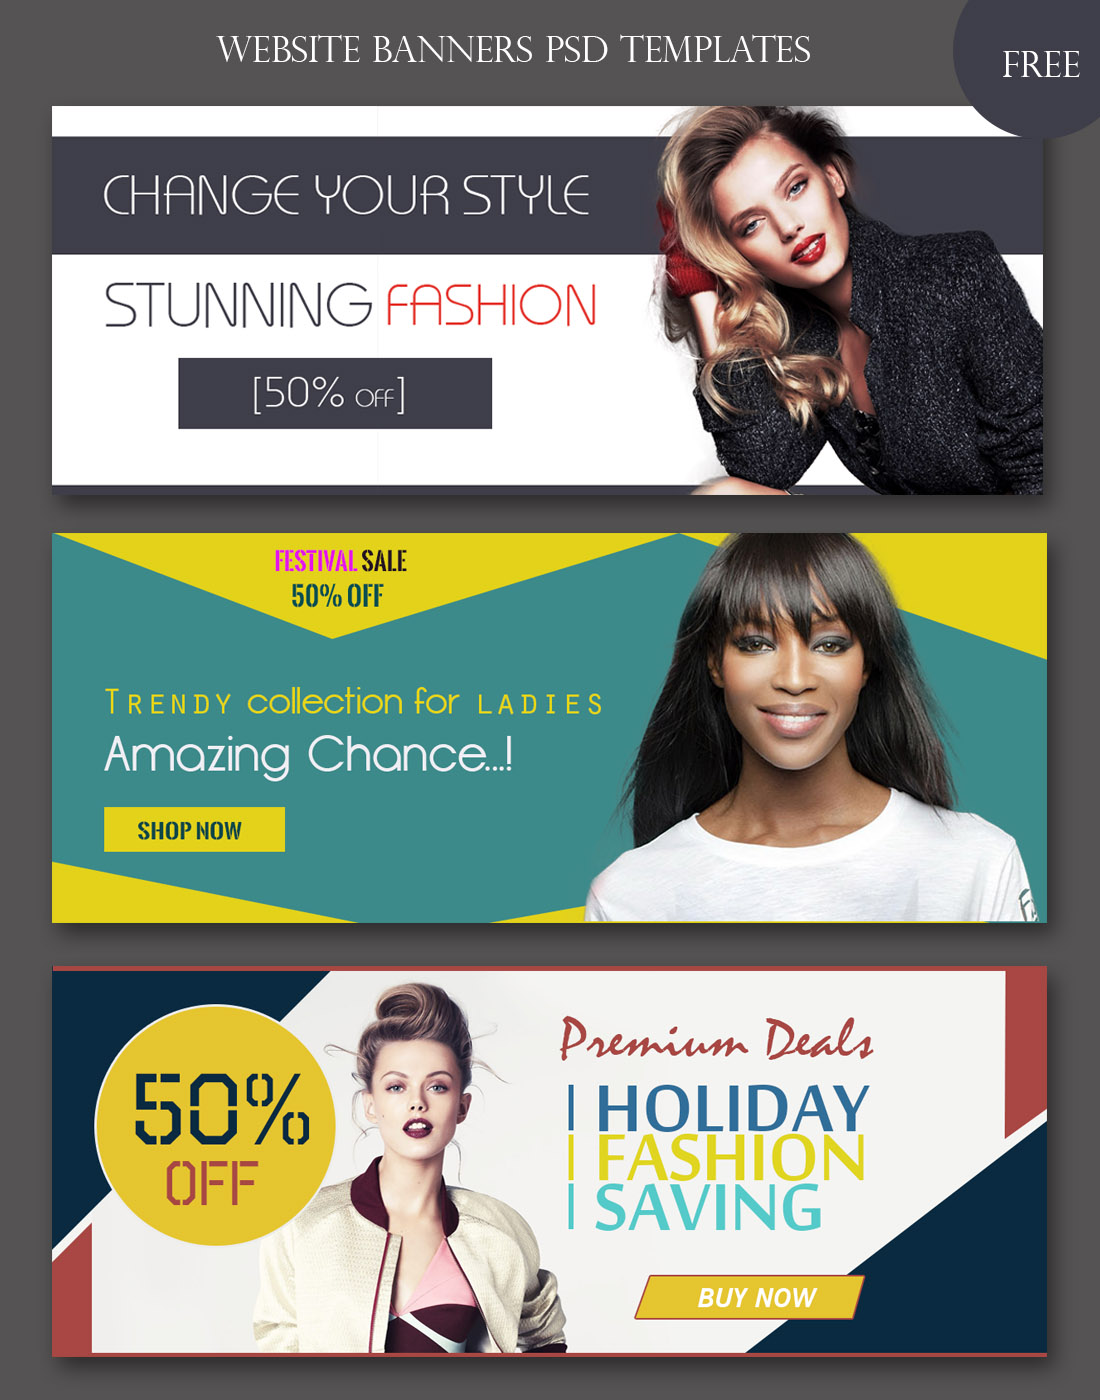 banners psd templates